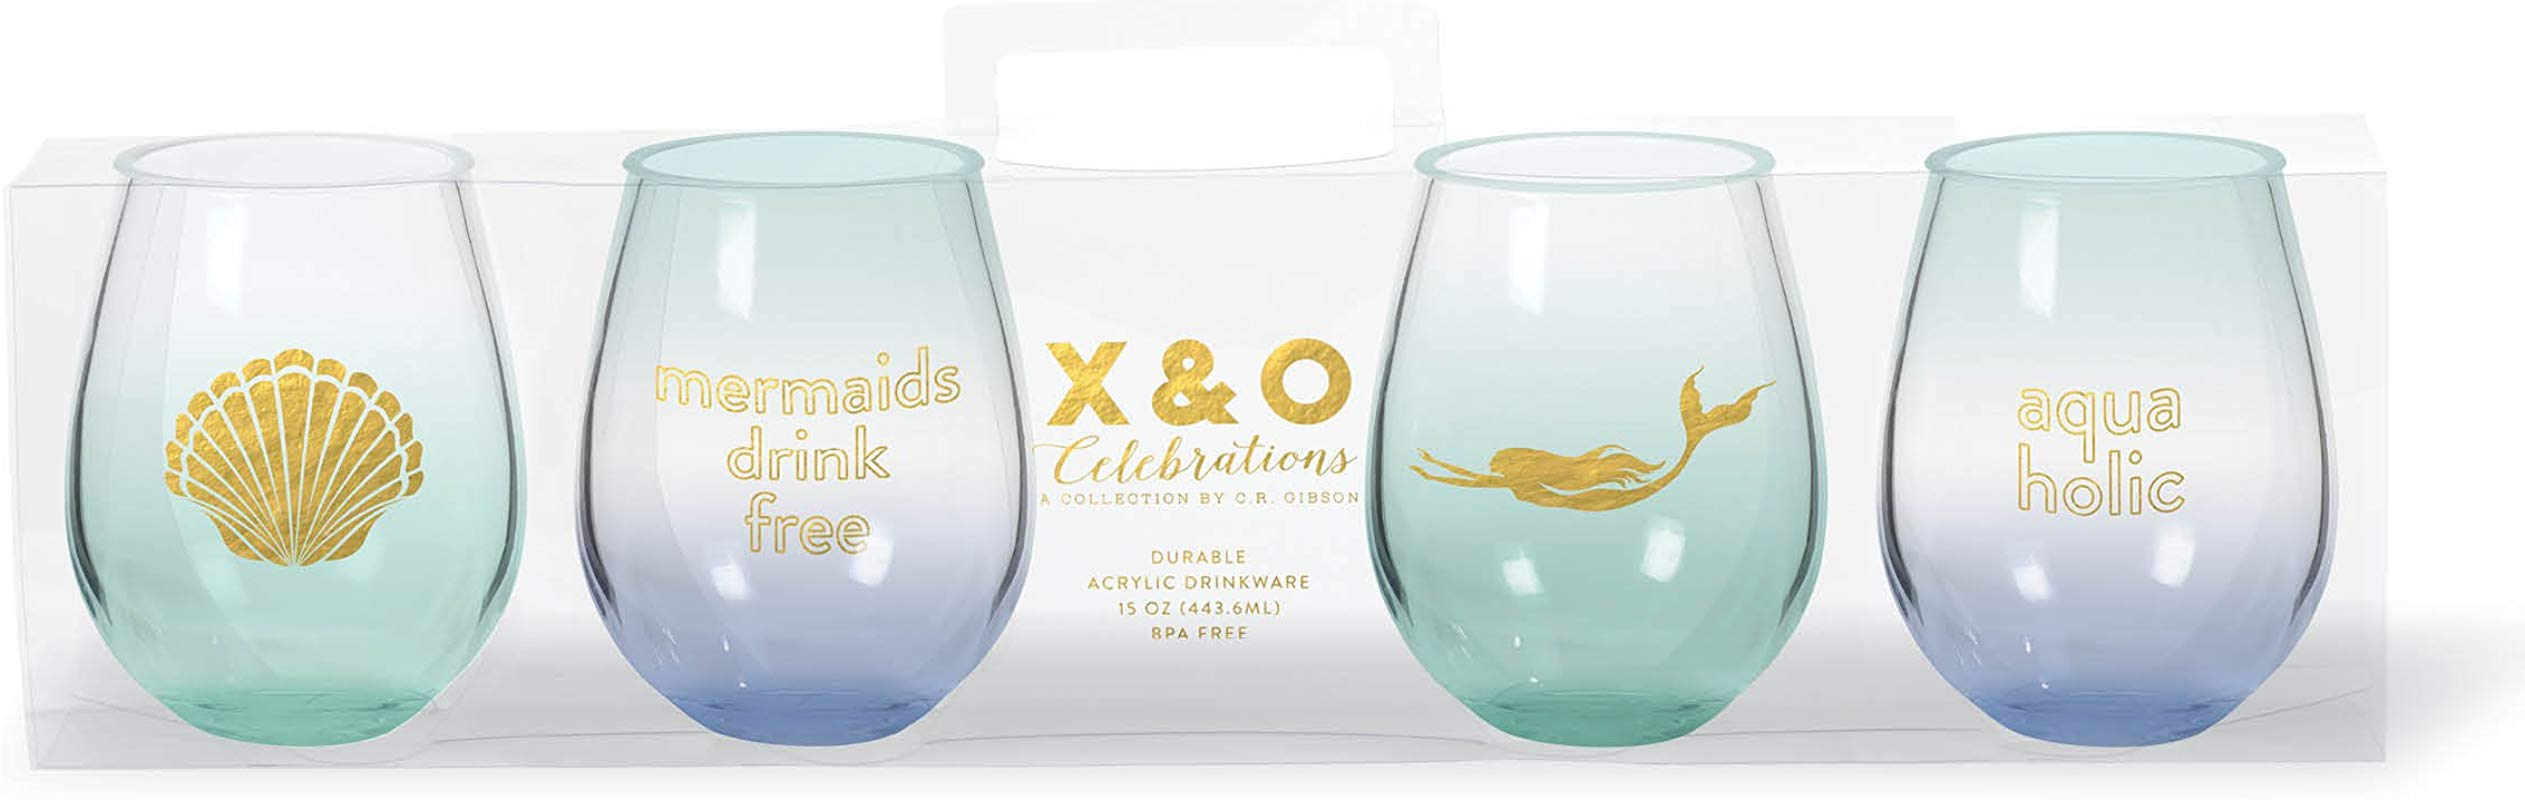 C R Gibson QWGS4 20886 4 Pack Stemless Wine Mermaid